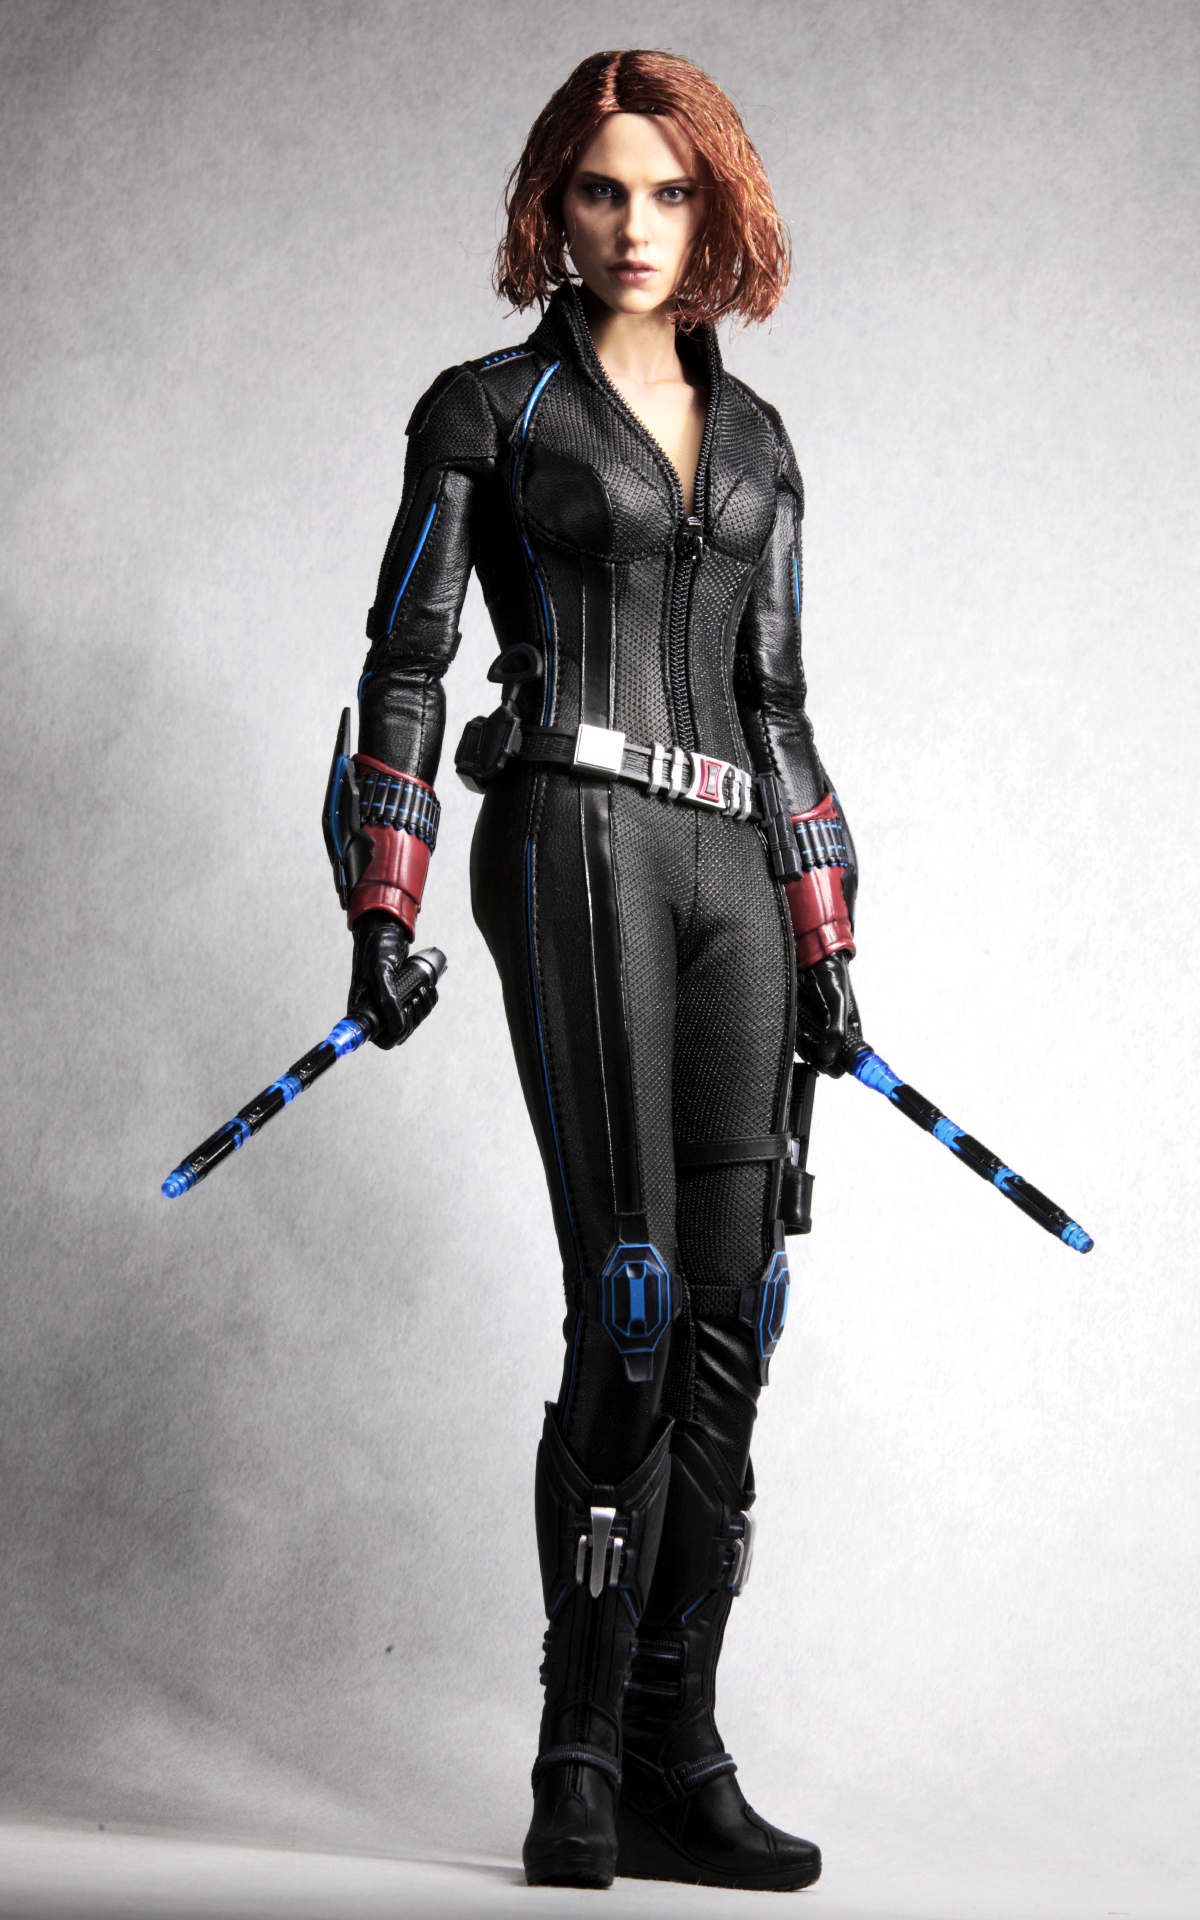 hottoys-avengers-age-of-ultron-black-widow-picture01